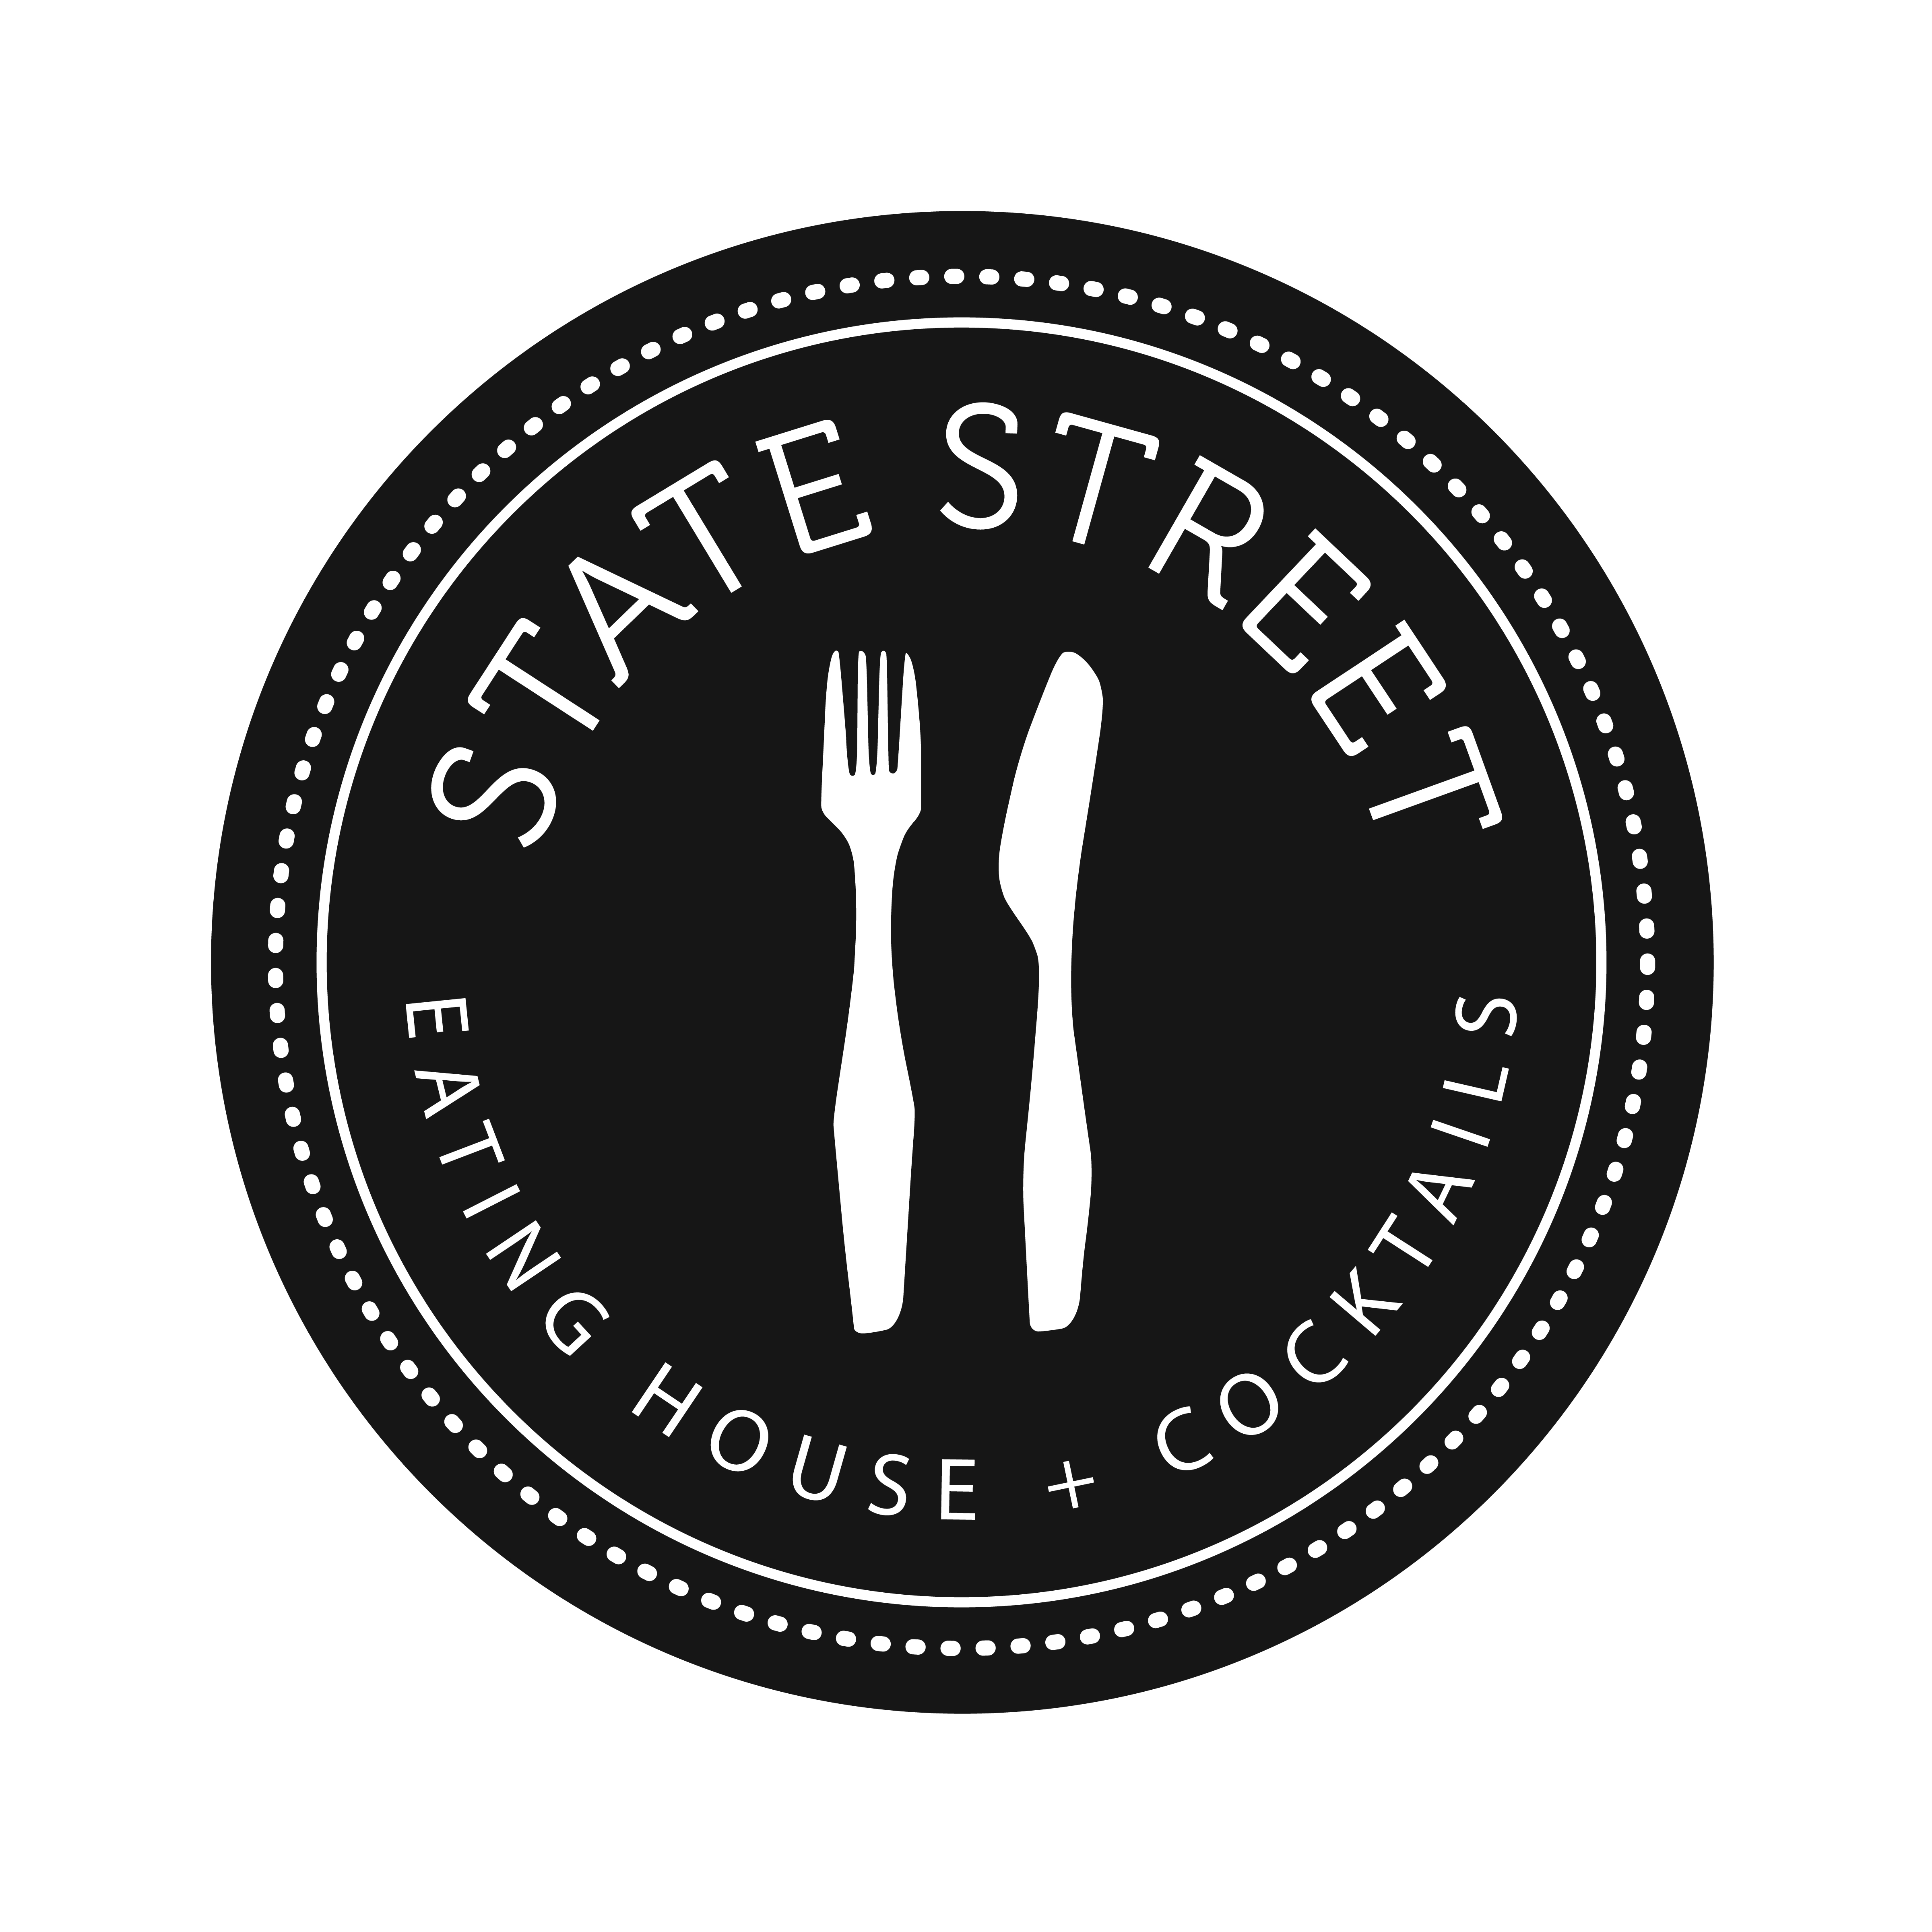 Fresh House - Made Pasta Every Wednesday at State Street Eating House + Cocktails